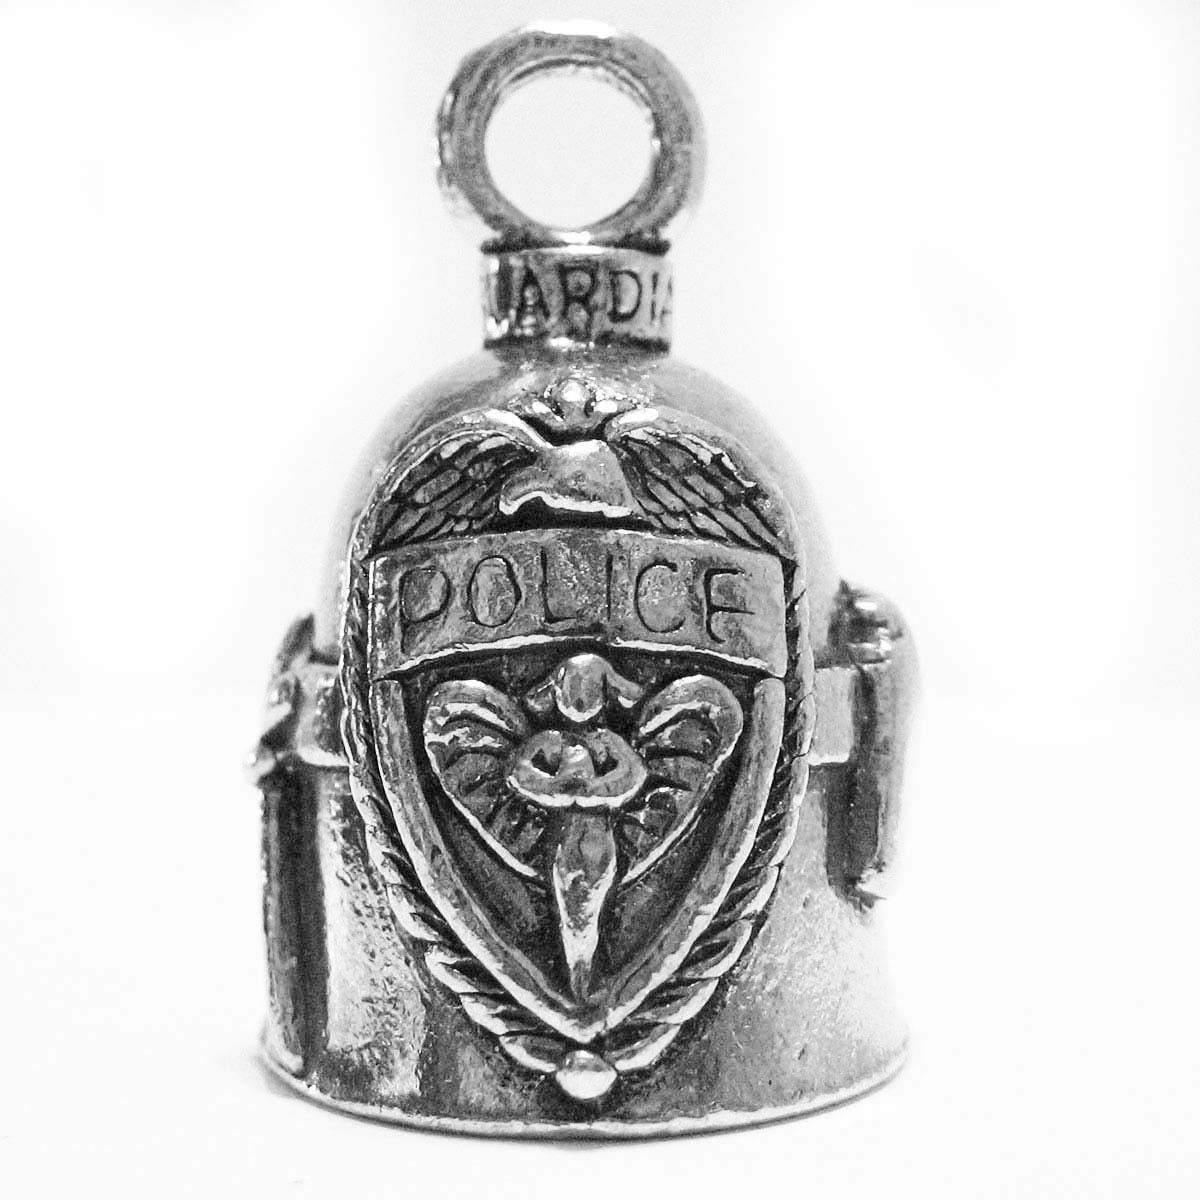 Guardian Bell Police Protect & Serve Motorcycle Biker Ride Luck Bell Key Ring